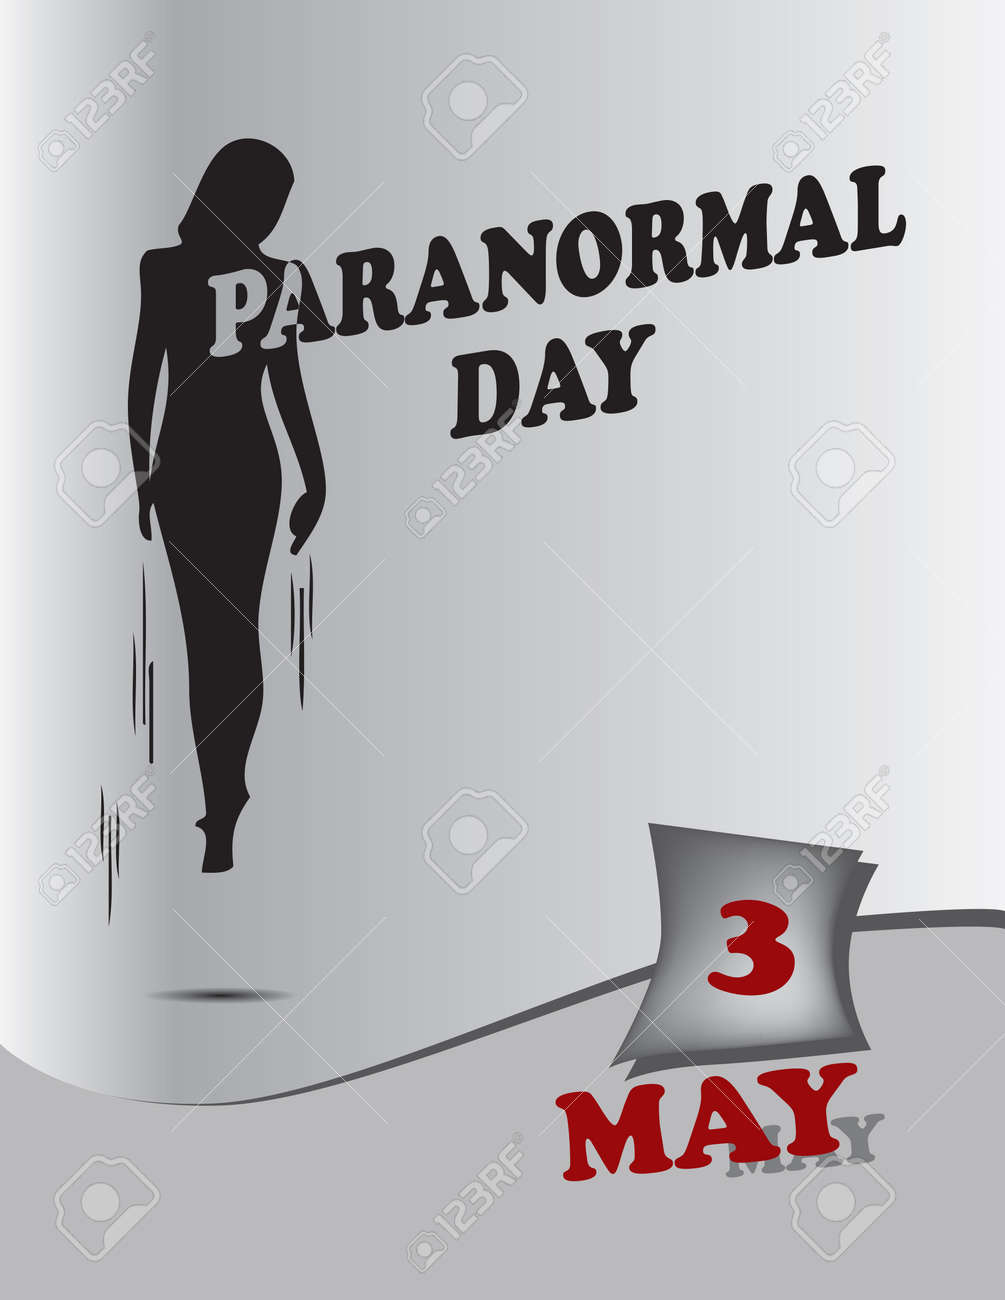 Poster Paranormal Day.Vector illustration for a holiday date in may - 169027993